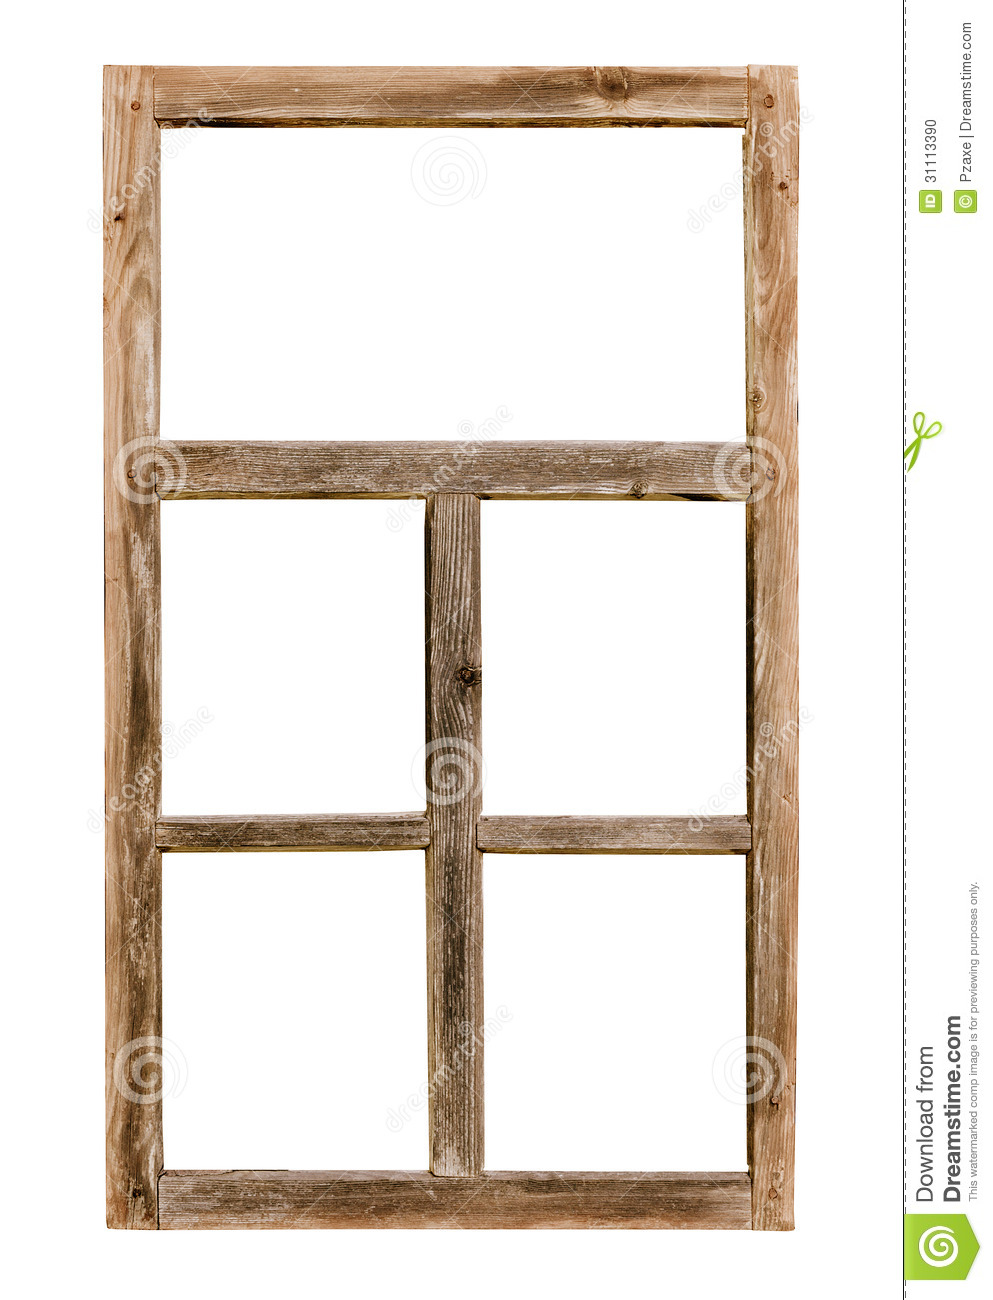 Window frame gambar royalty meranie koncentr wooden for Wooden windows